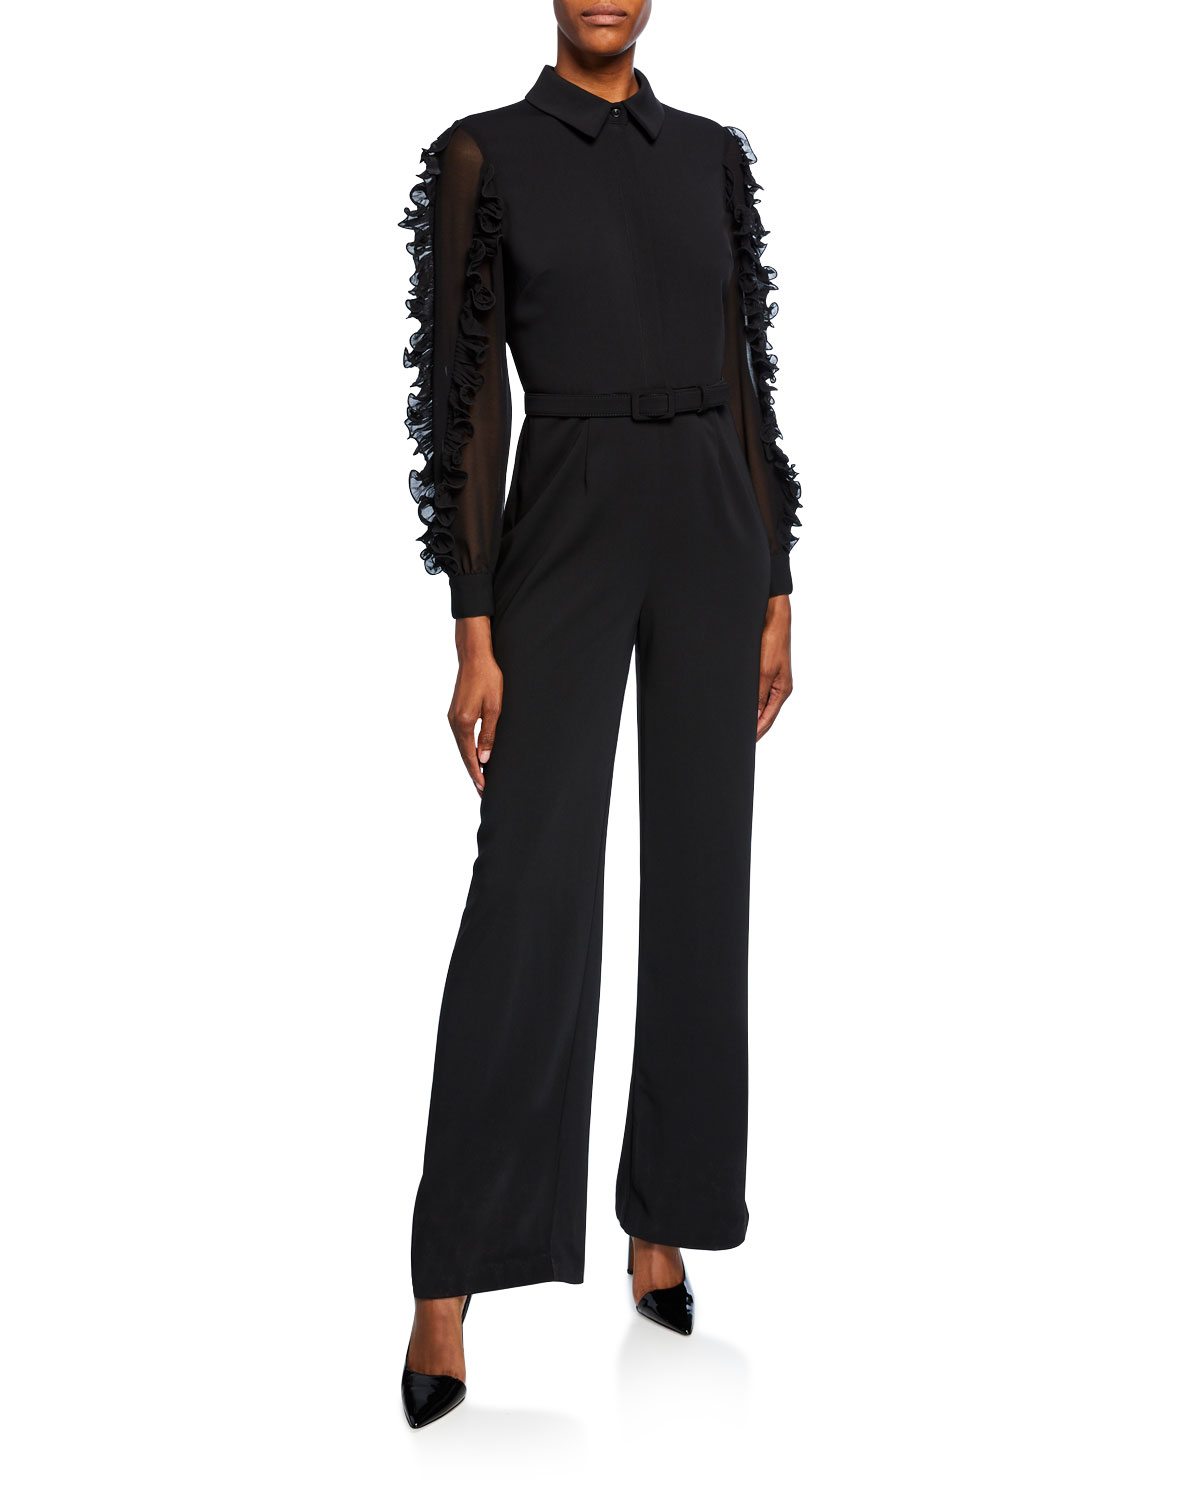 Badgley Mischka Suits LONG-SLEEVE BELTED RUFFLE JUMPSUIT